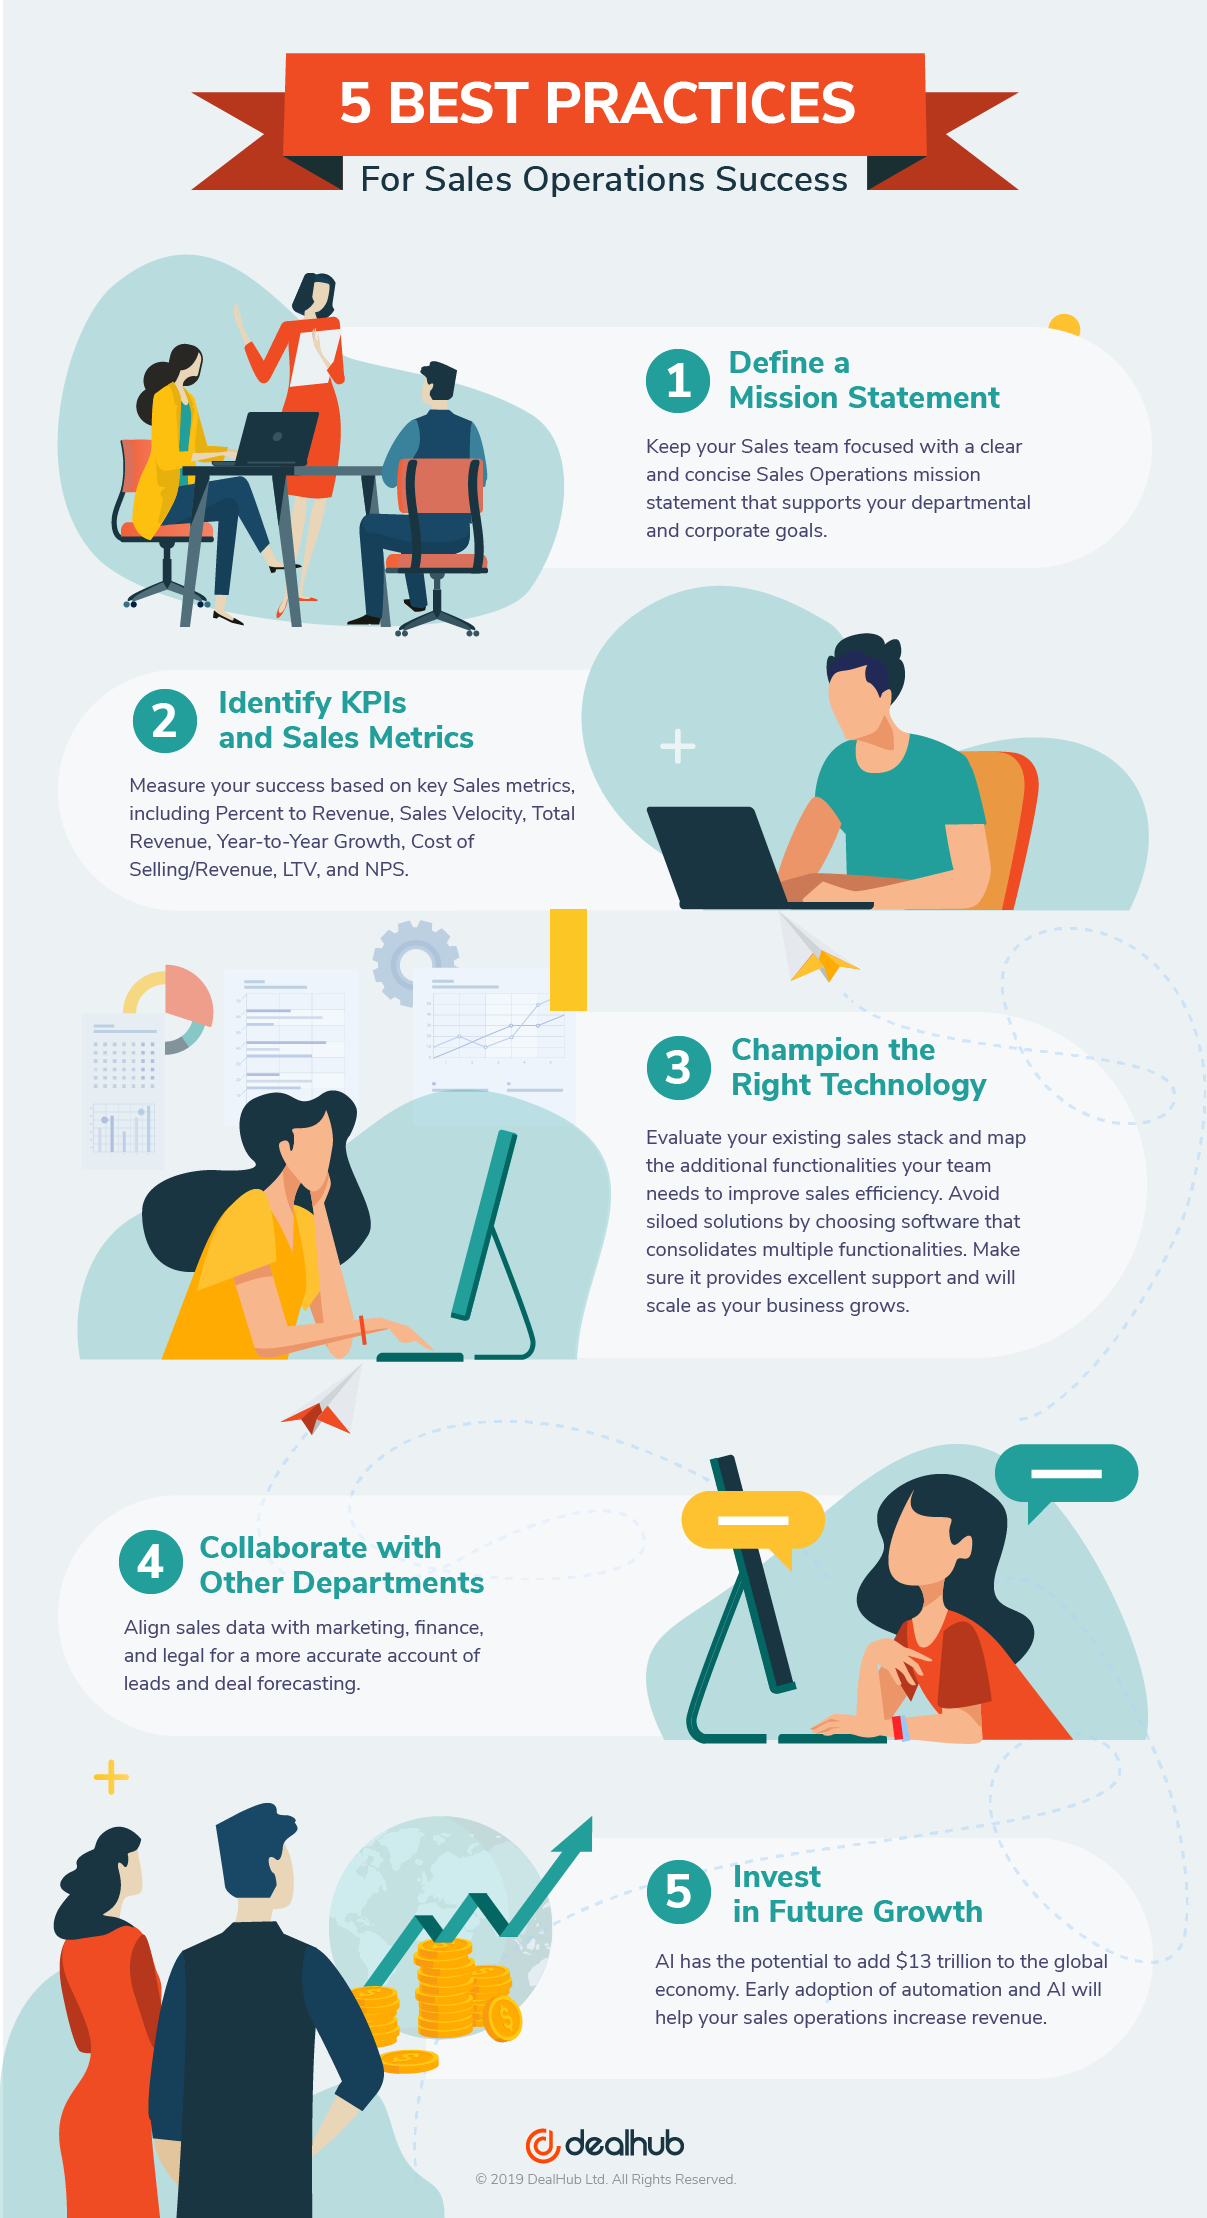 5 Best Practices for Sales Operations Success infographic